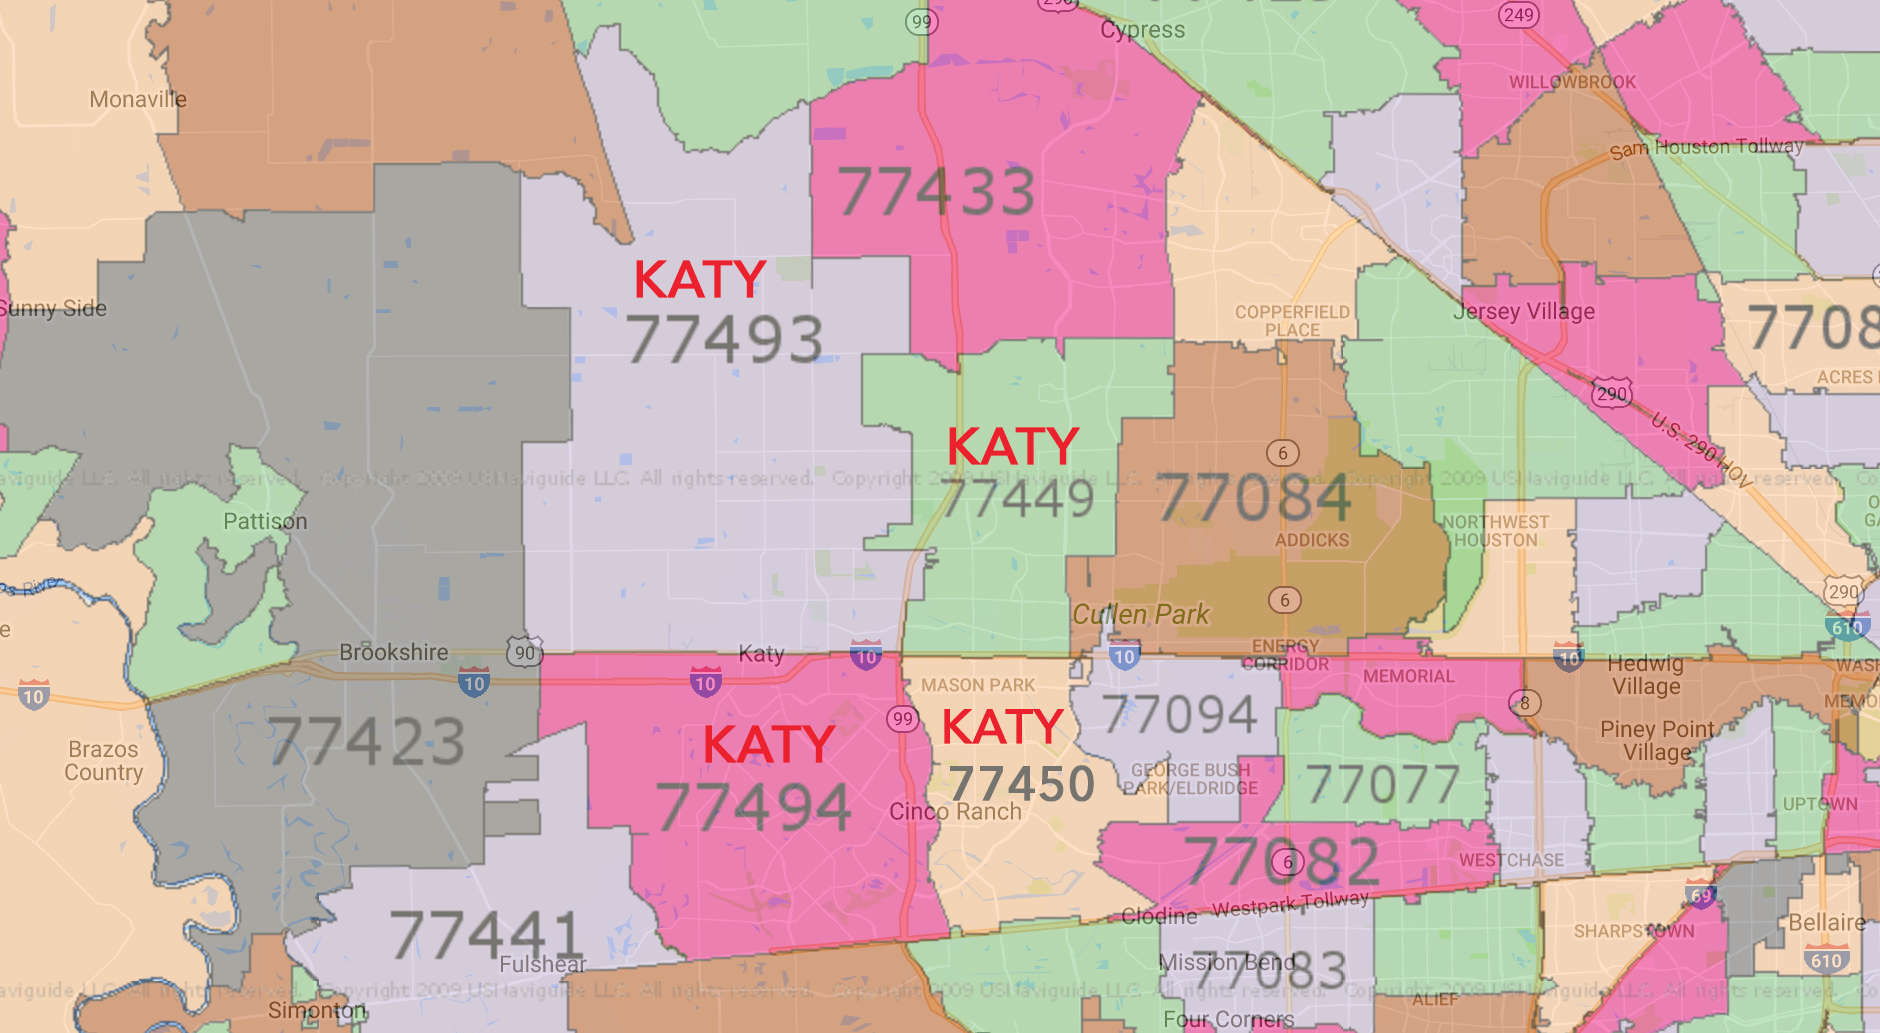 A Look at Katy Texas Demographics By Zip Code Katy Texas Map on katy high school, thalia texas map, la coste texas map, the woodlands, texas state map, scottsdale texas map, new braunsfels texas map, houston map, austin map, spring texas map, willis texas map, waxahachie texas on map, volente texas map, rice university texas map, greater houston, harris county, allen texas map, diboll texas map, dalhart texas on map, almeda texas map, brownsville texas map, fort bend county, altus texas map, missouri city, san antonio map, andy dalton, waller county, deanville texas map,